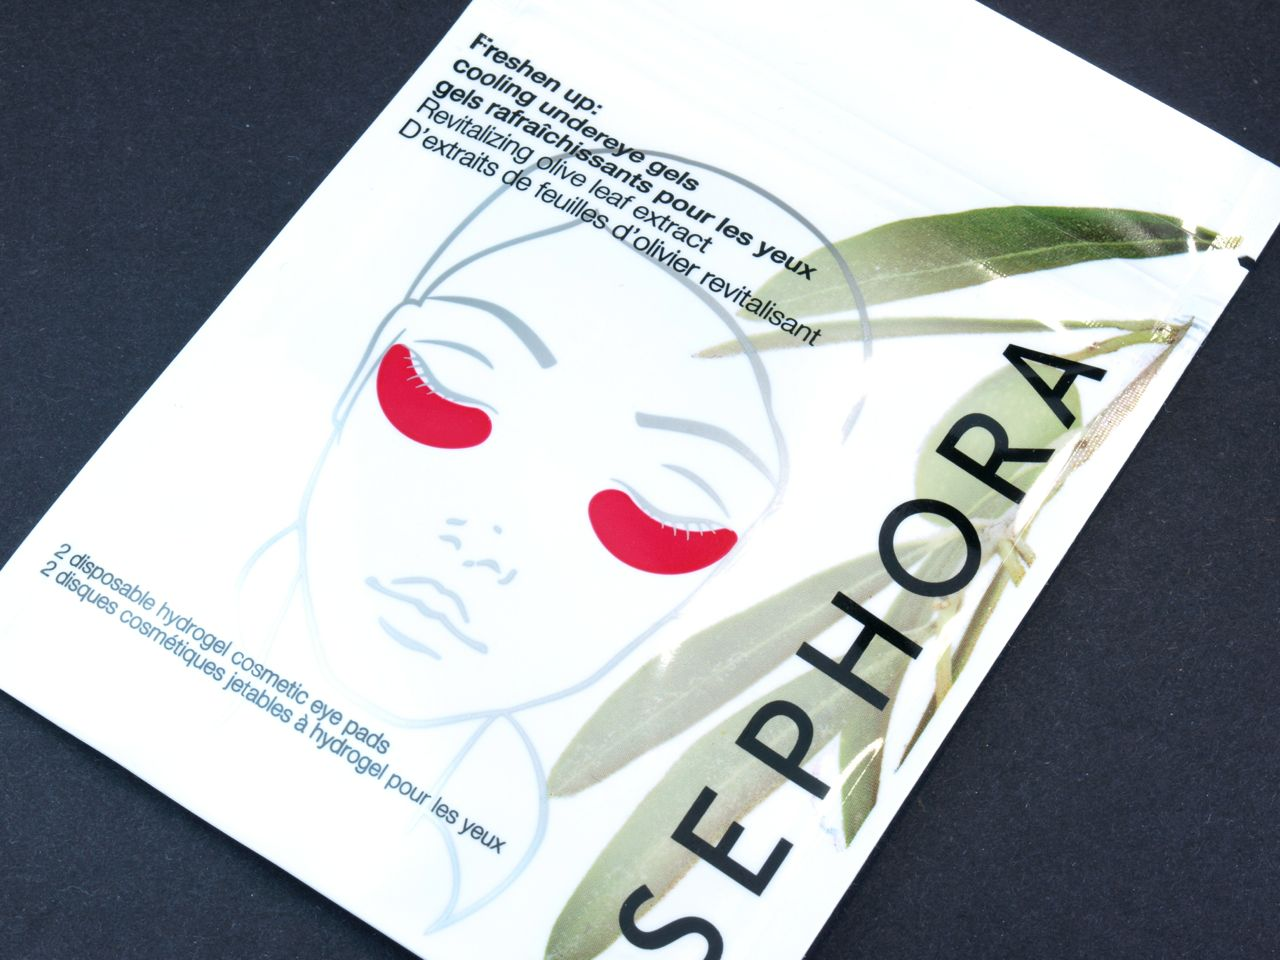 Sephora Freshen Up Cooling Undereye Gels: Review